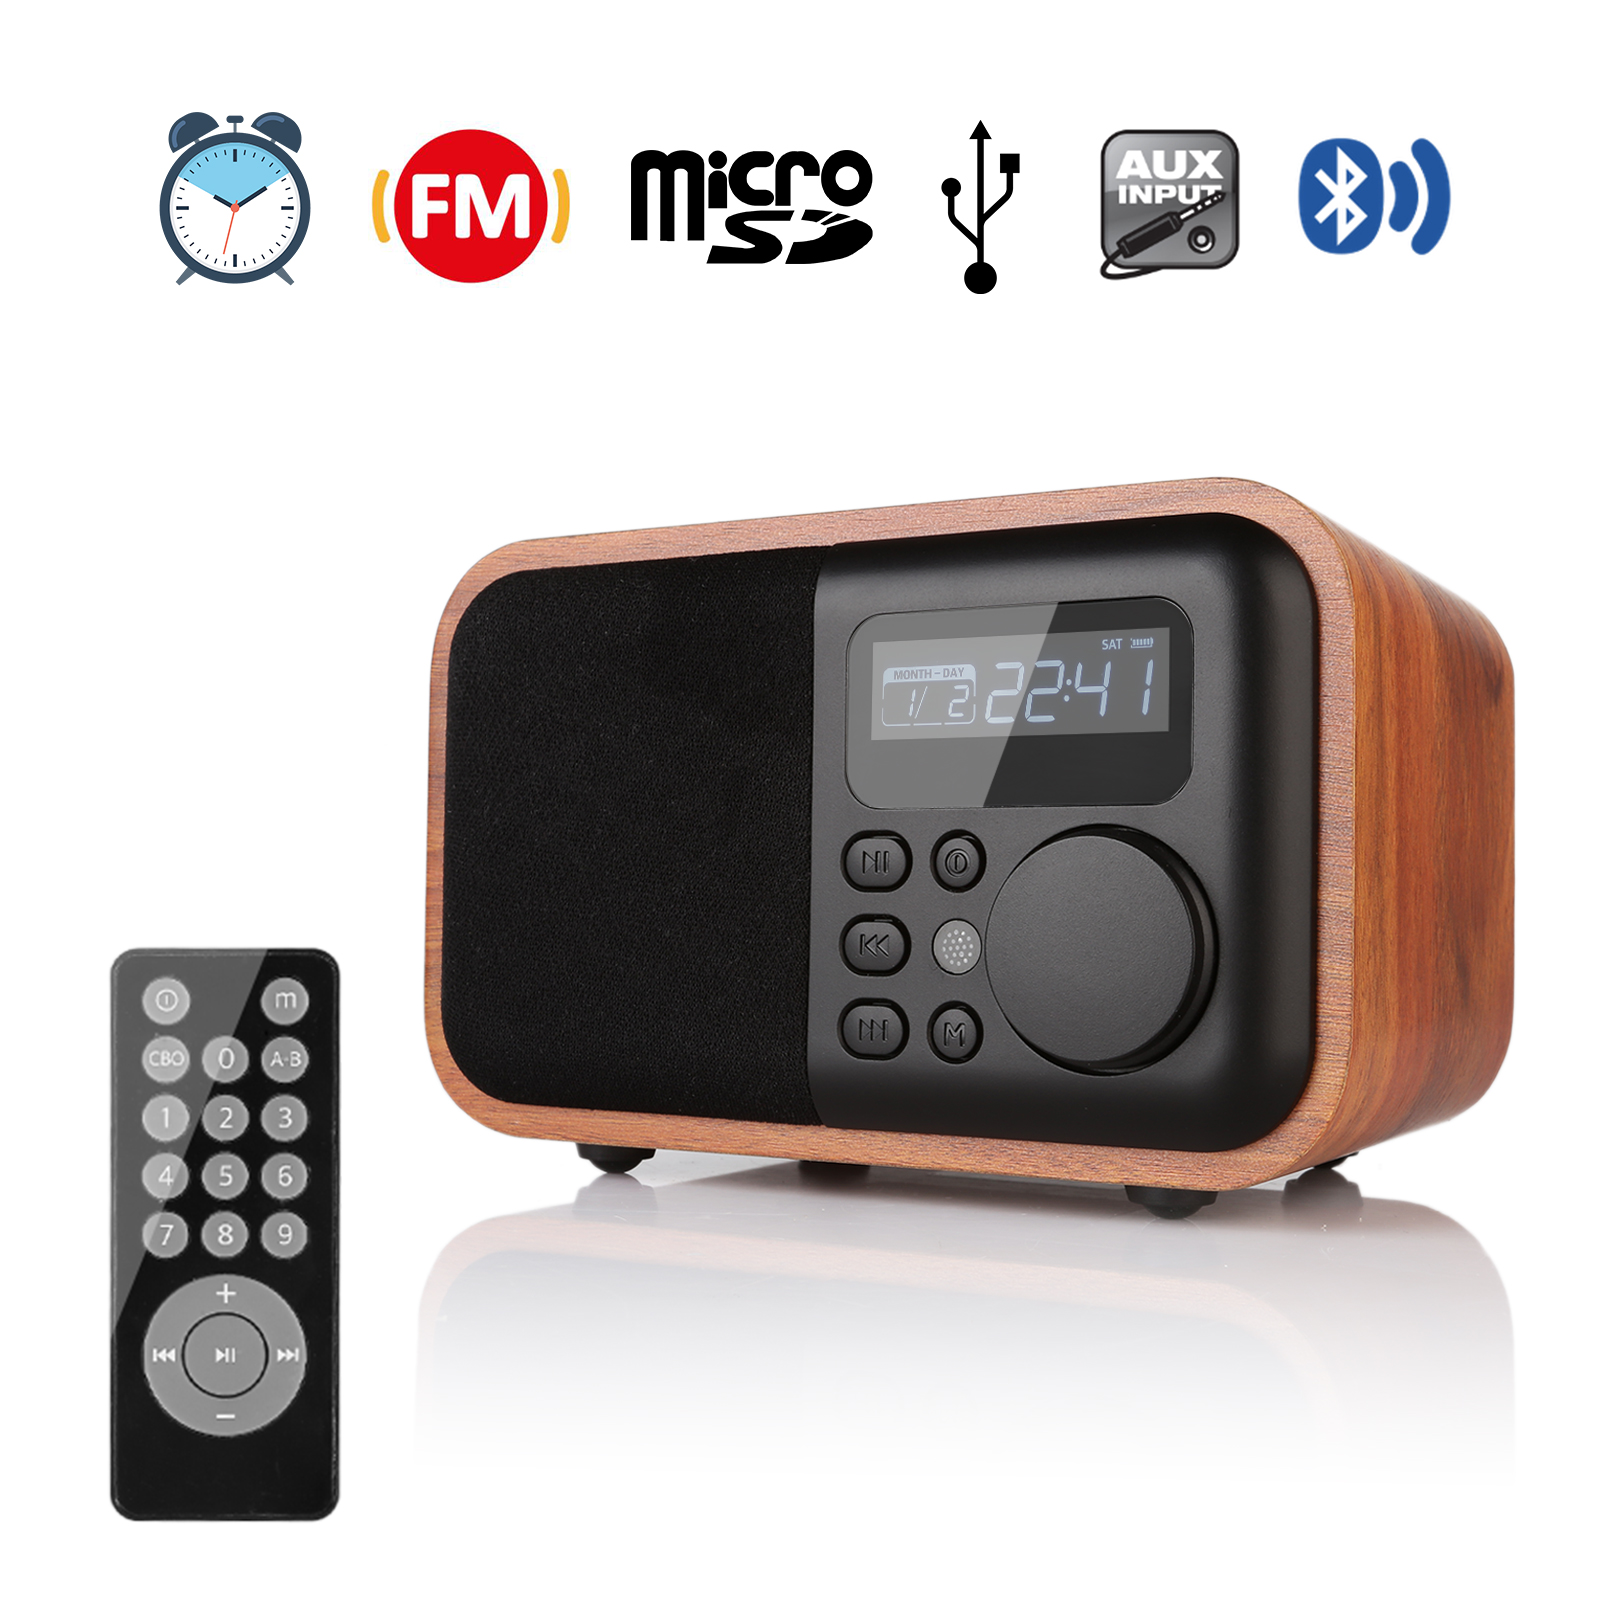 wooden digital speaker bluetooth fm radio with alarm clock mp3 remote control ebay. Black Bedroom Furniture Sets. Home Design Ideas